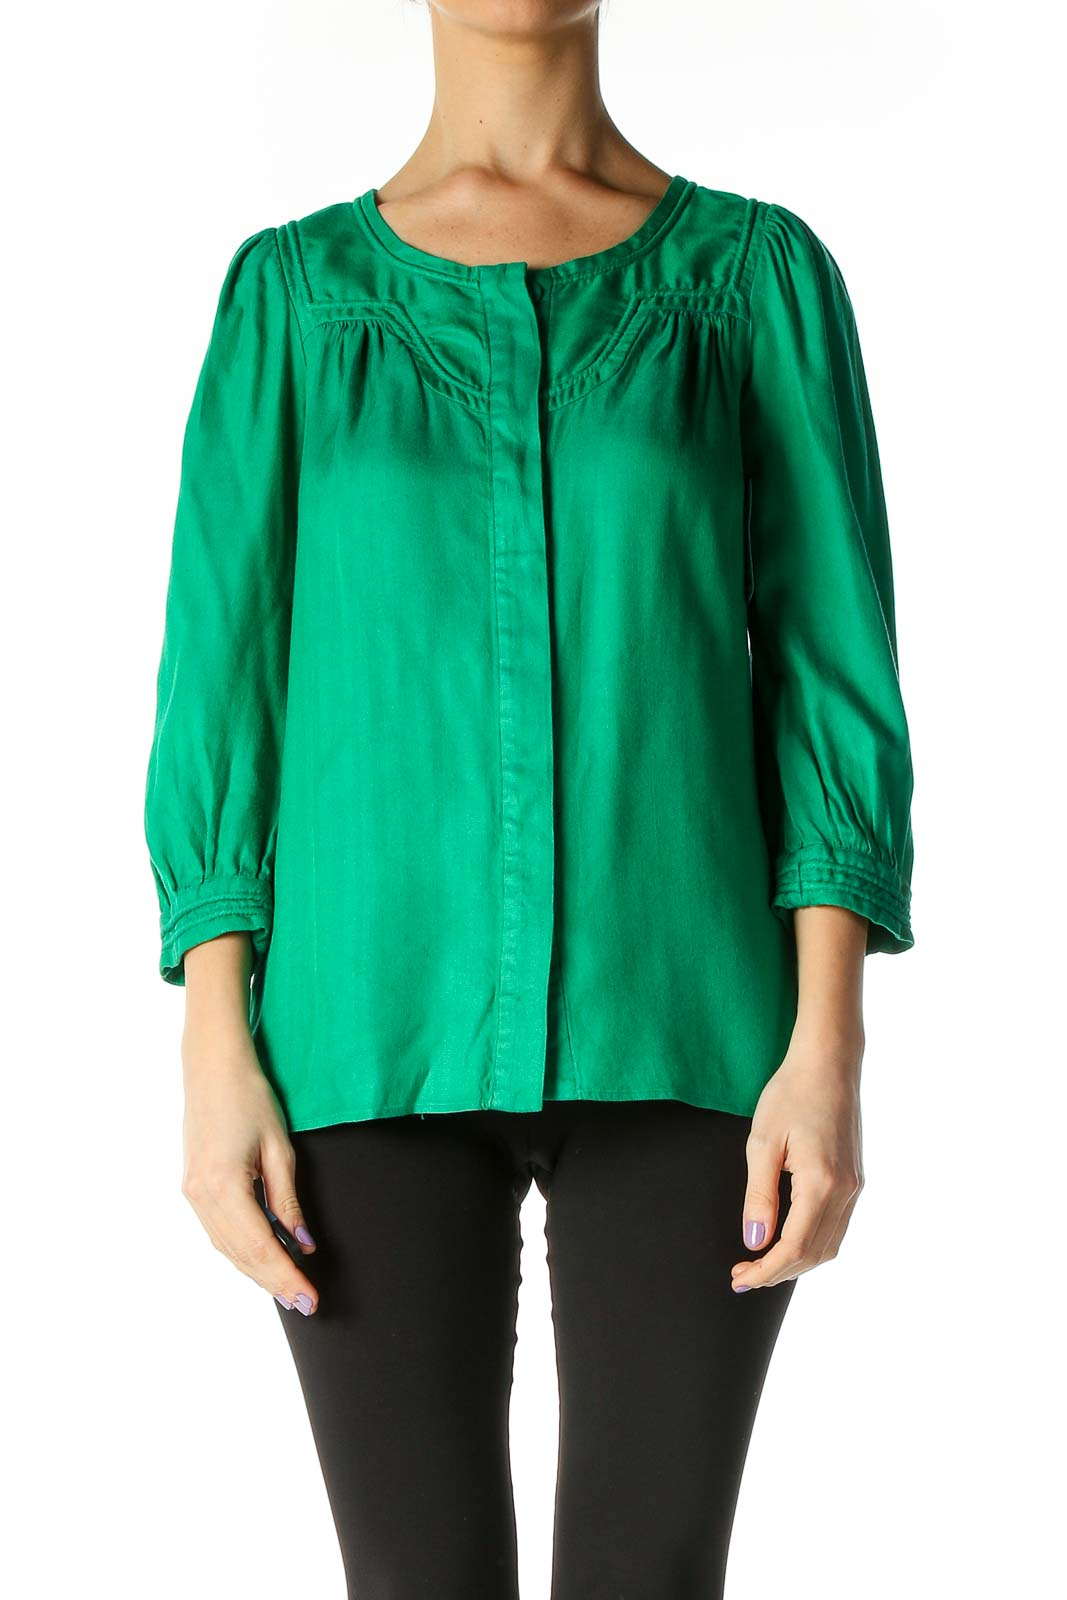 Green Solid Retro Blouse Front